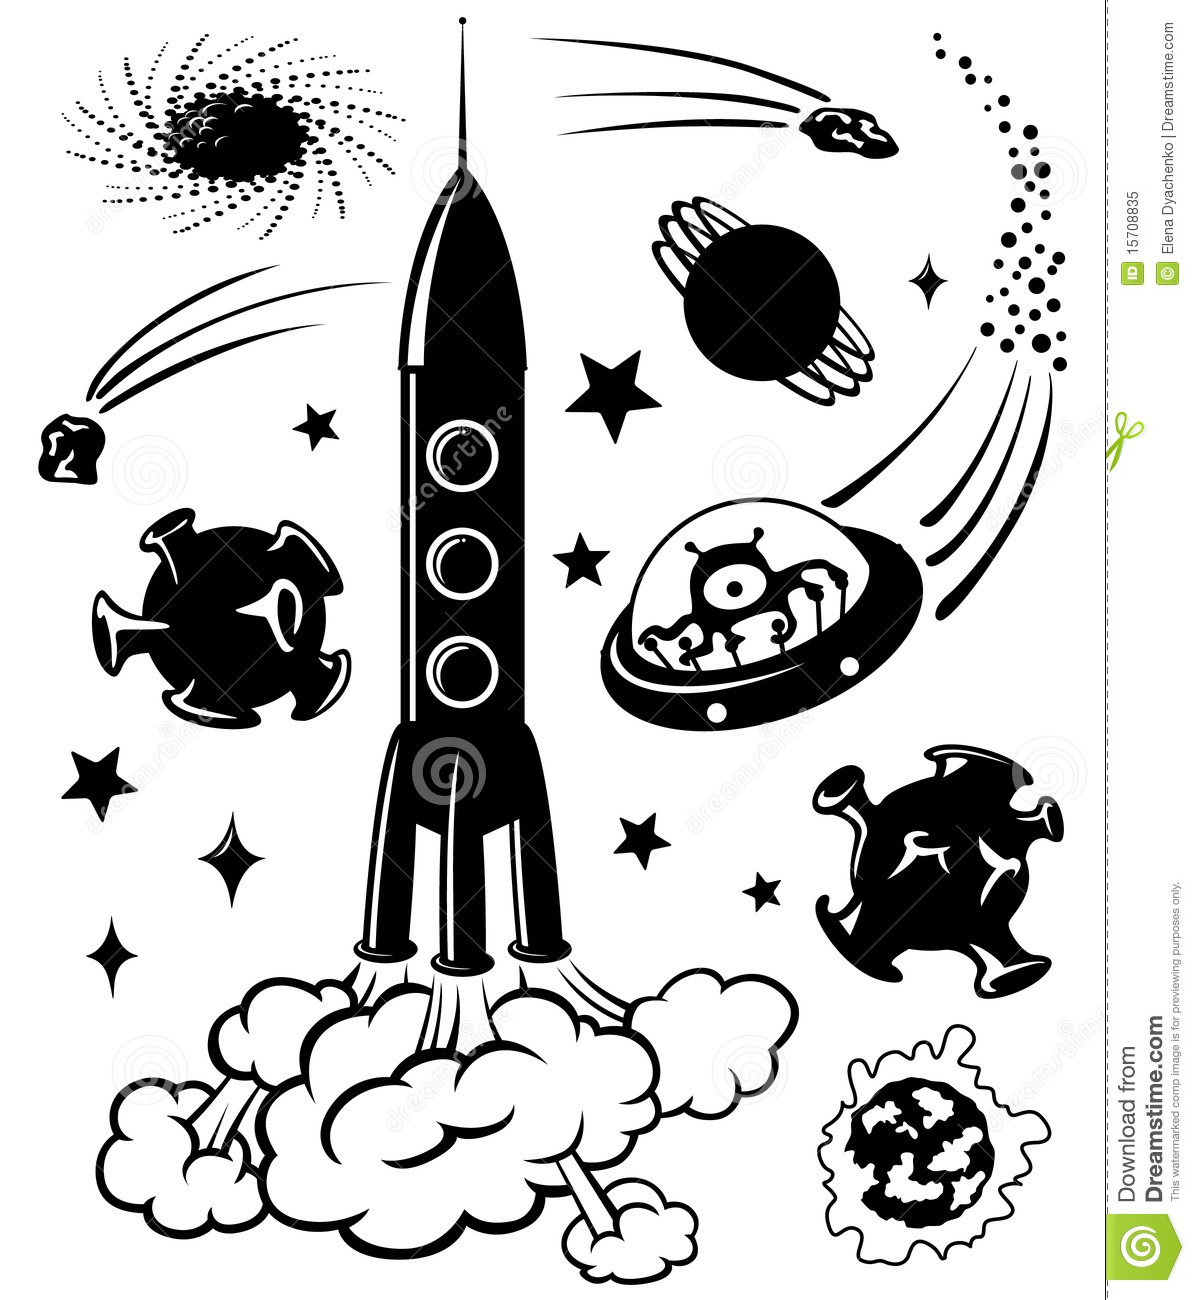 Space Silhouettes Royalty Free Stock Photo